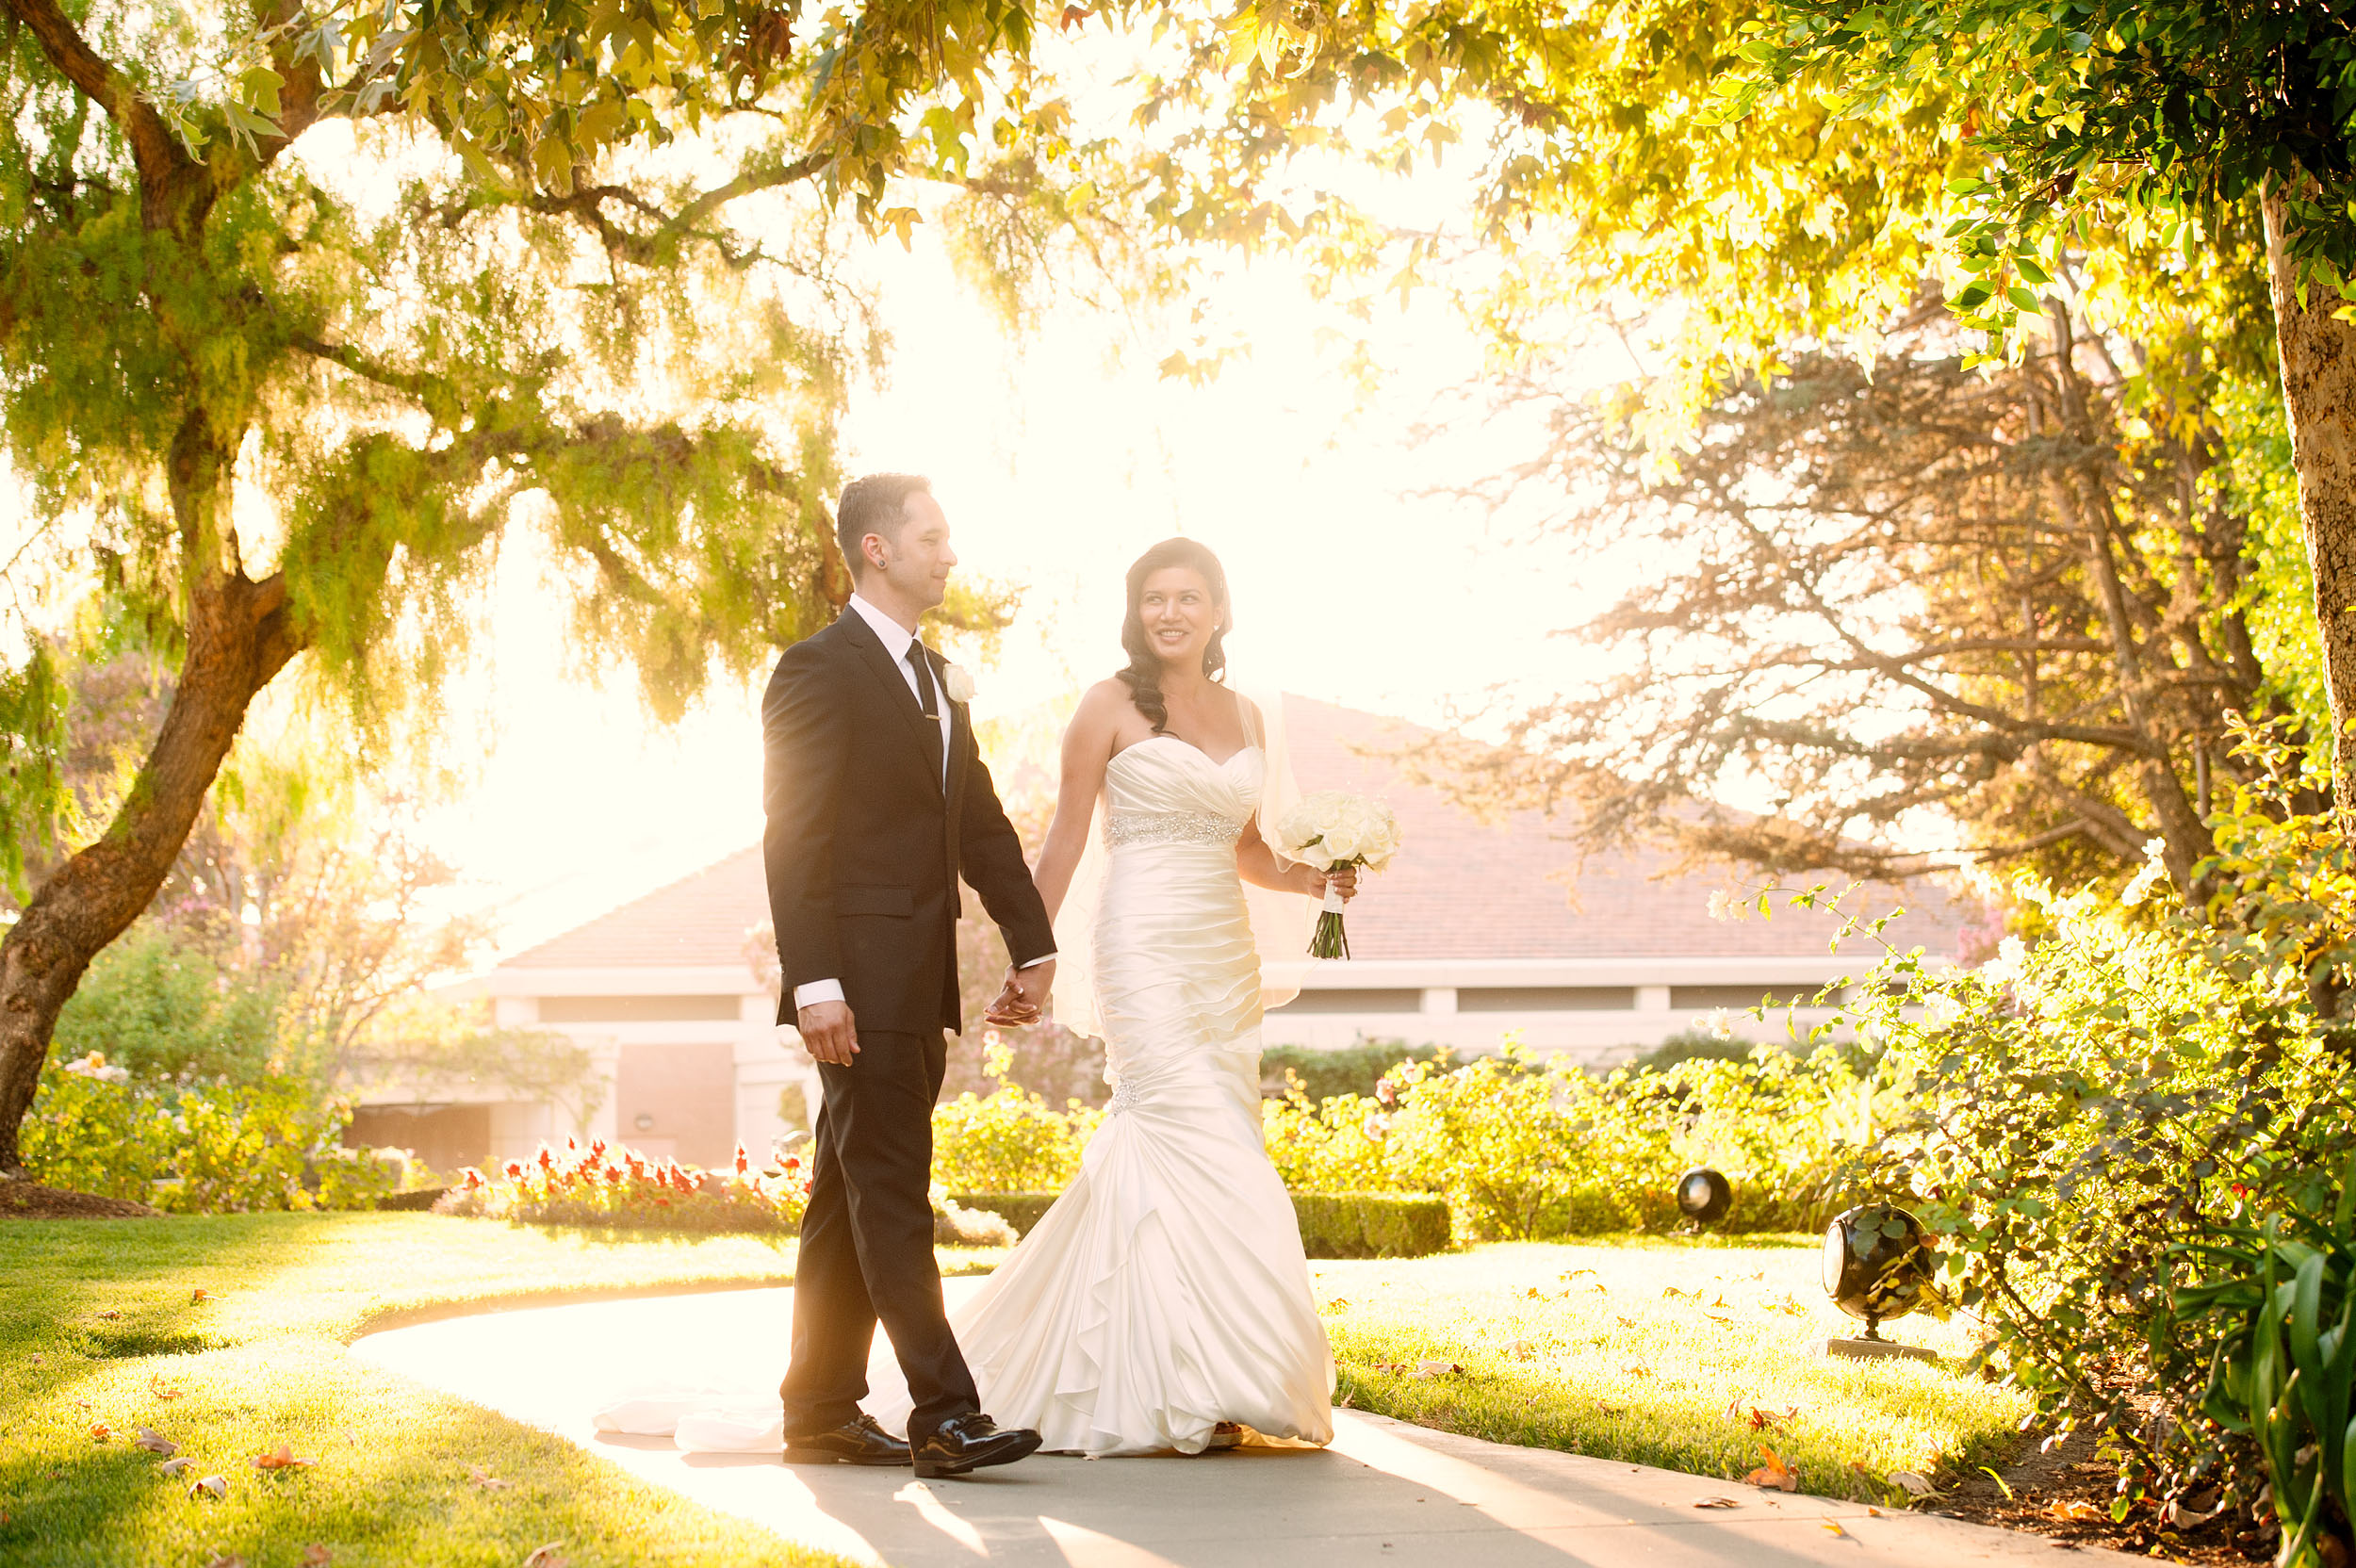 A bride and groom walk bathed in sunlight at the Nixon Presidential Library & Museum in Yorba Linda.